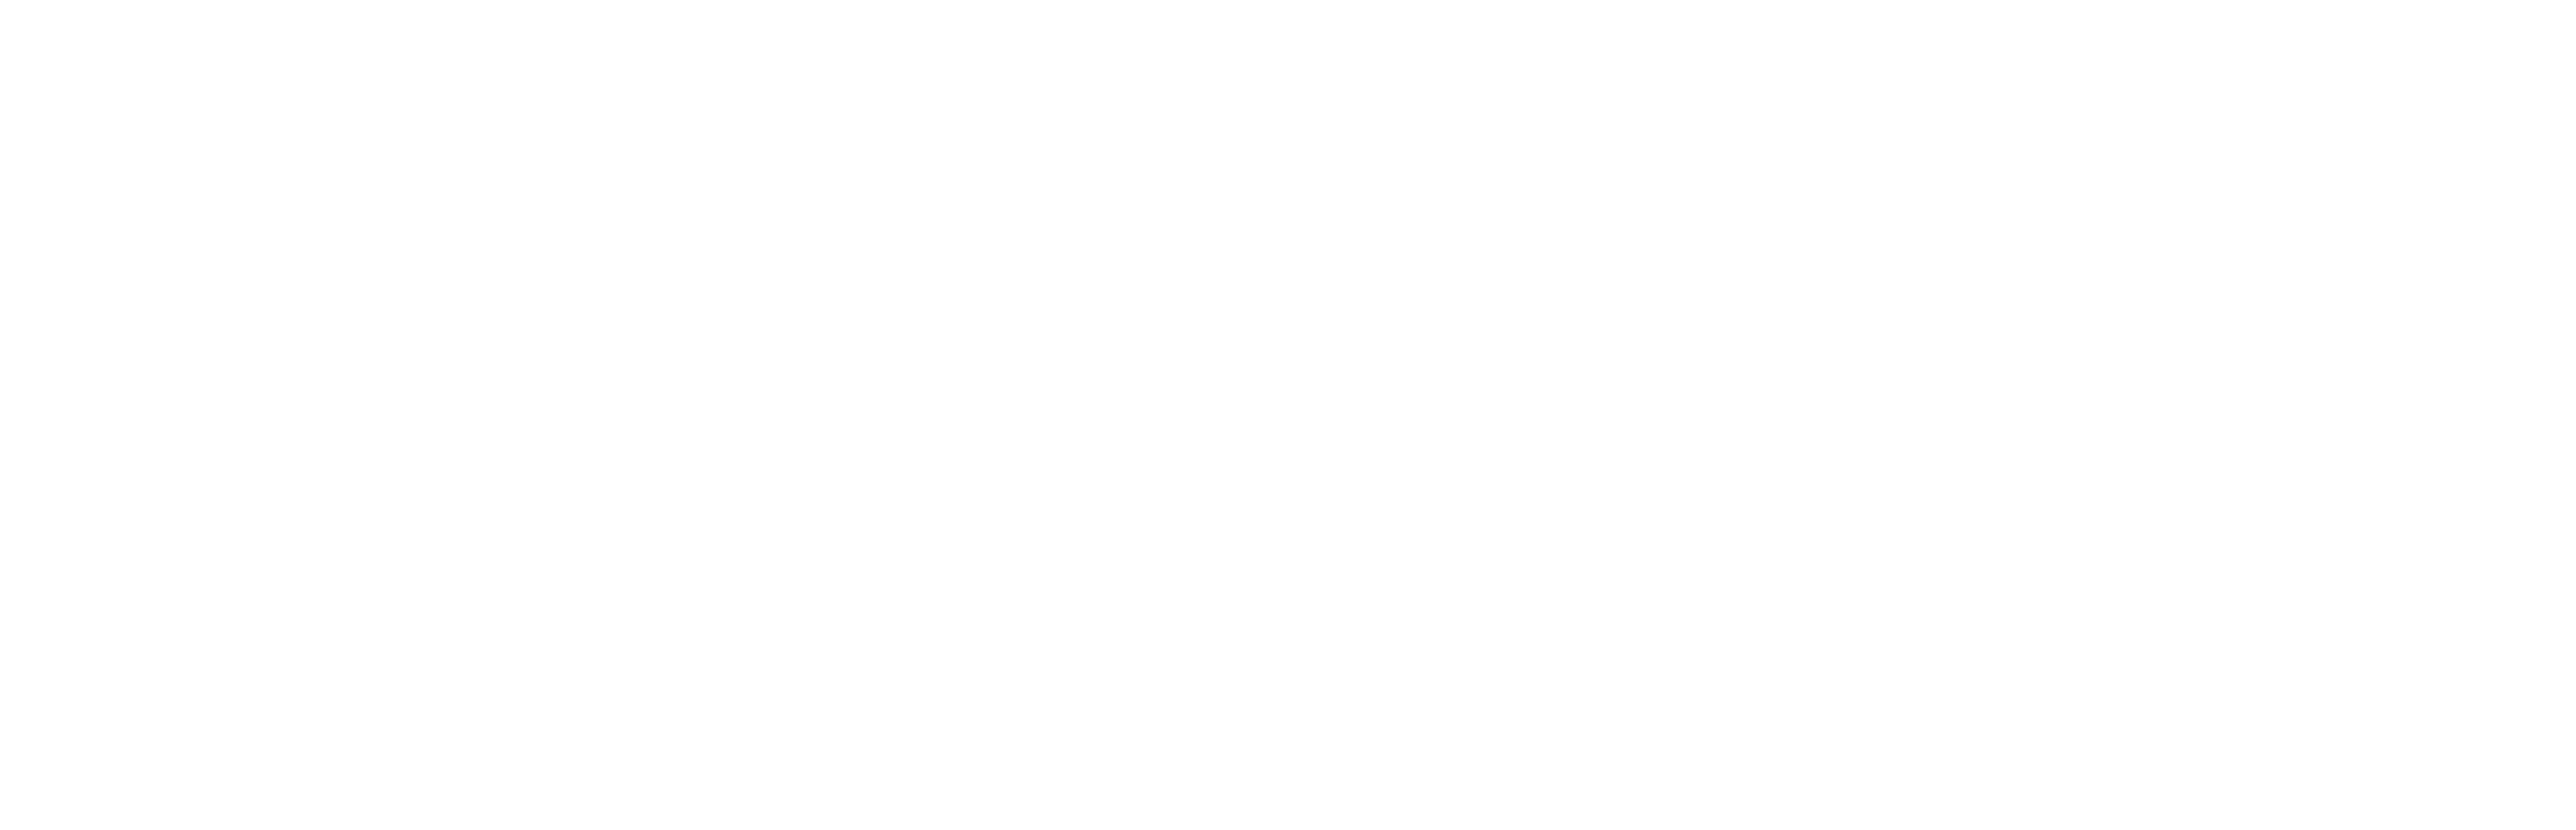 Highland Village, TX Bookkeeping Firm | Home Page | Tax Fix Now